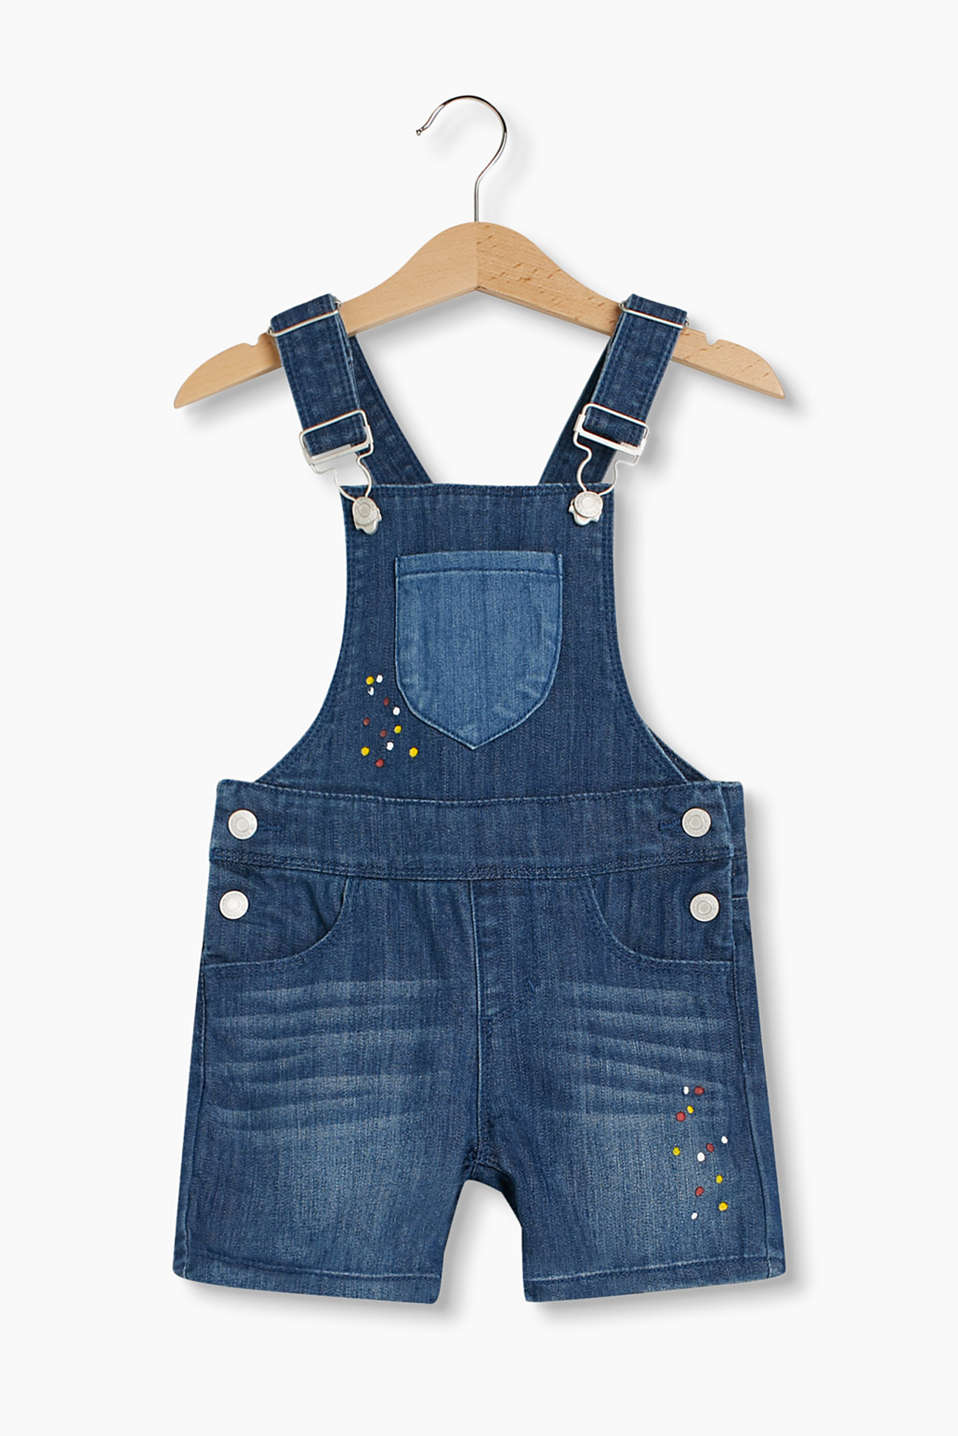 These short denim dungarees in soft stretch denim with a polka dot print and adjustable waistband are very stylish.